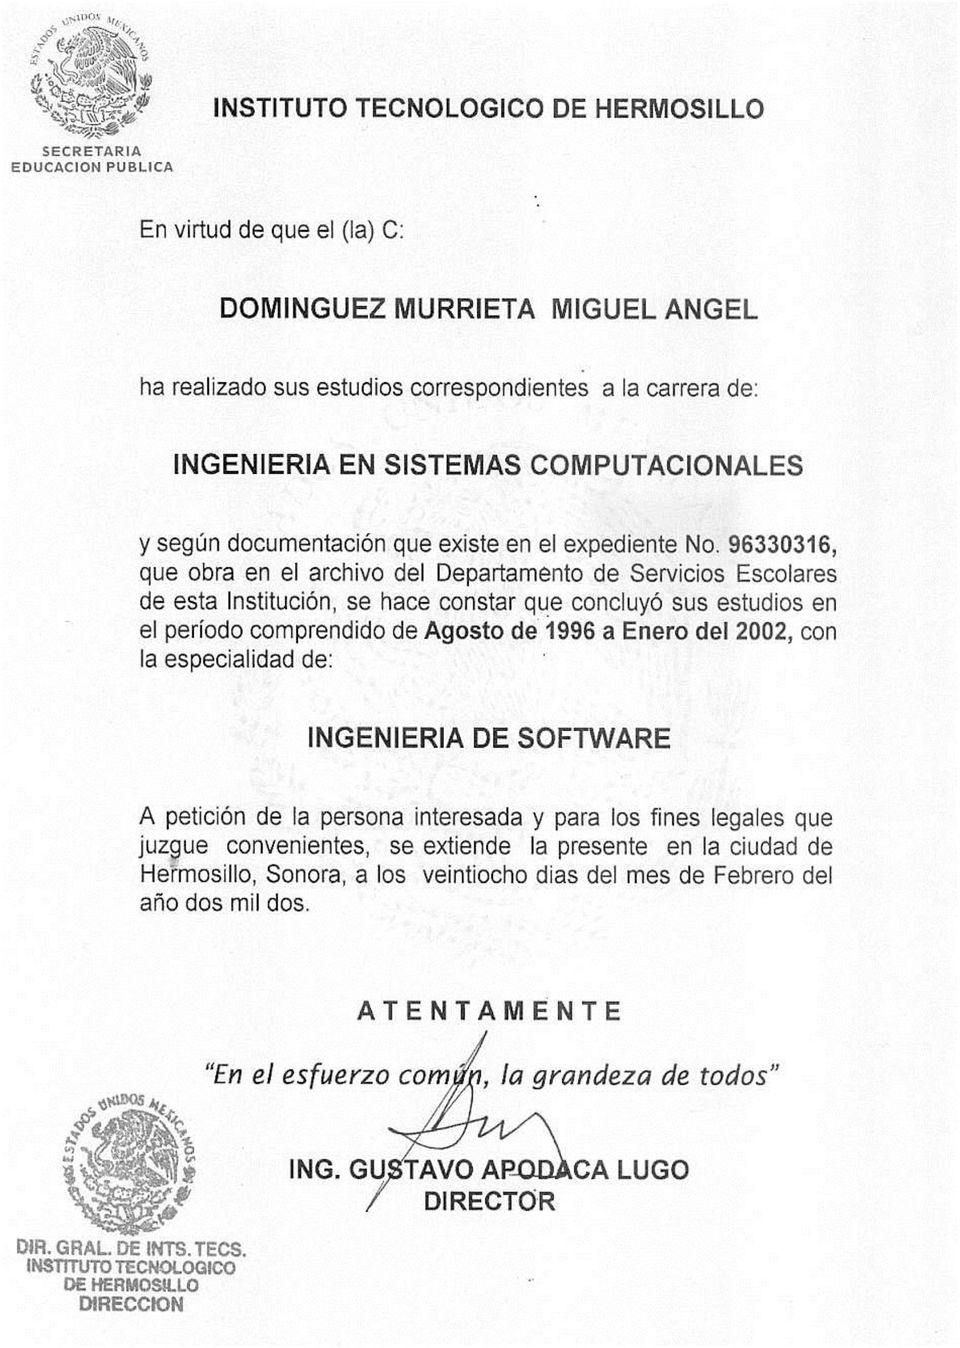 Curriculum Vitae Miguel Angel Dominguez Murrieta Datos Generales